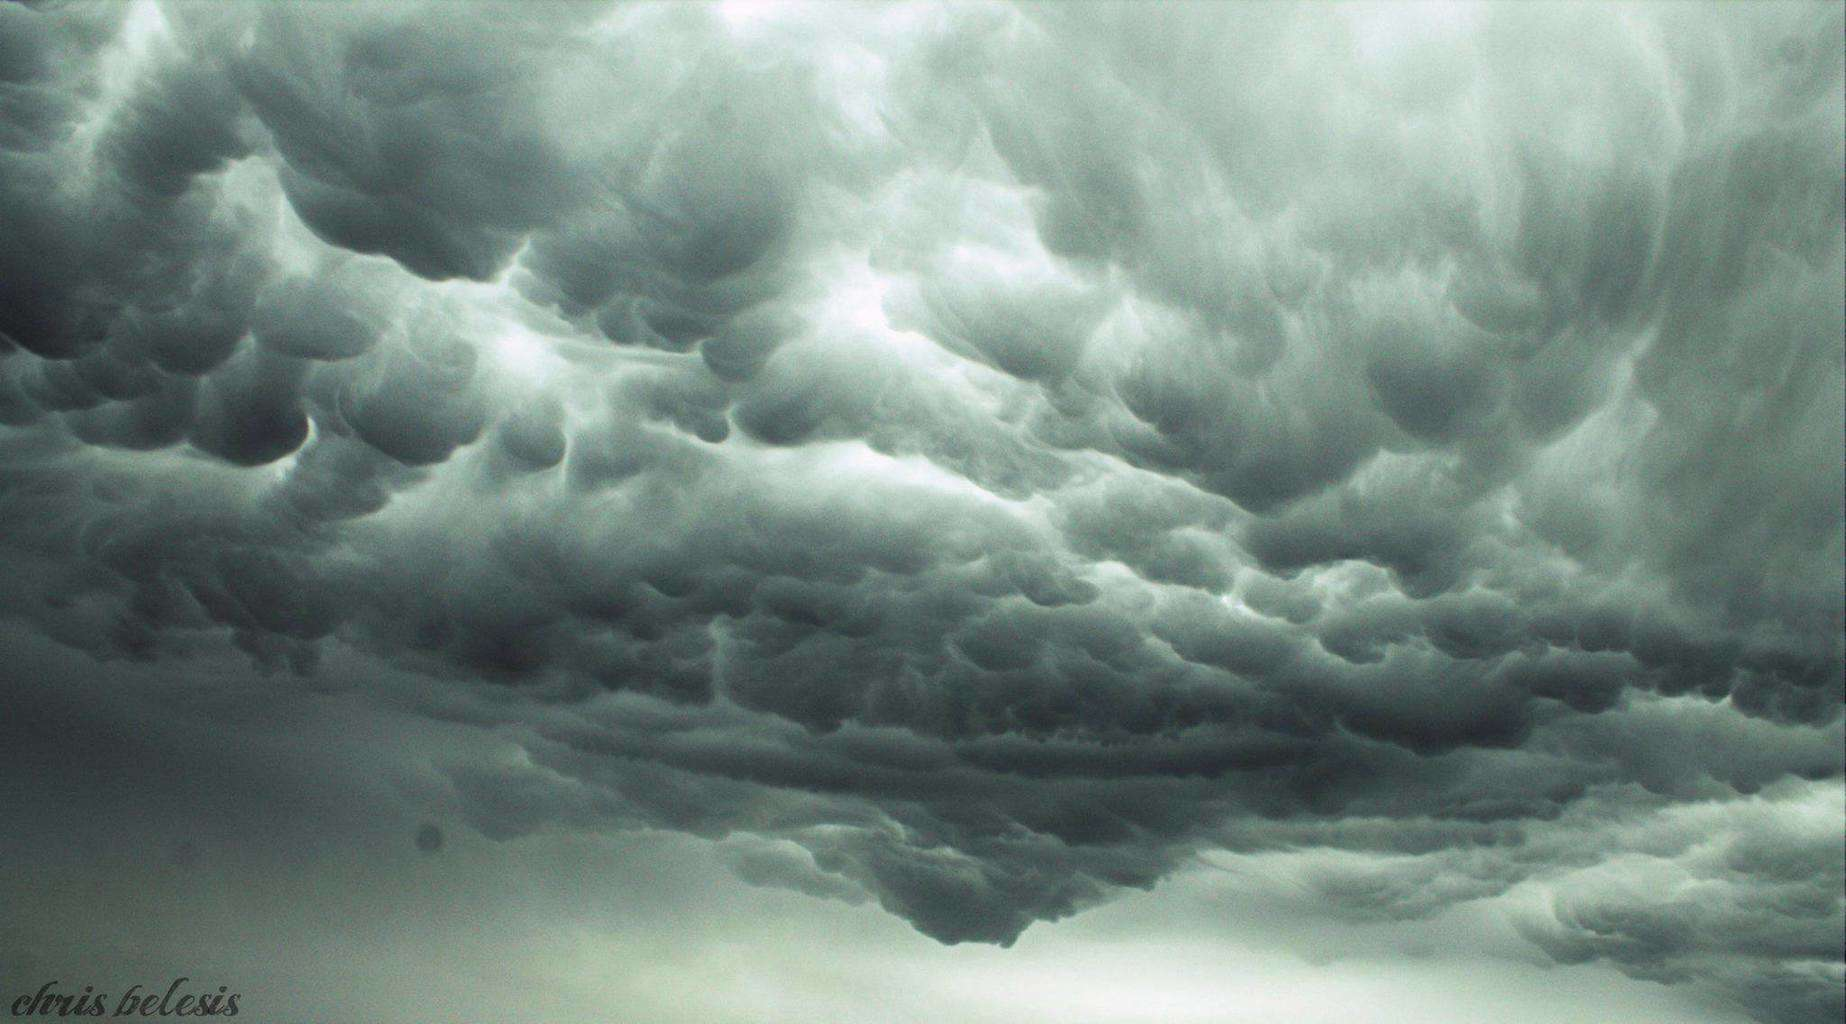 Mammatus over Nicosia - Cyprus, when i saw those clouds i was: OMG what a shapes !!!!! like tornado forming hahaha